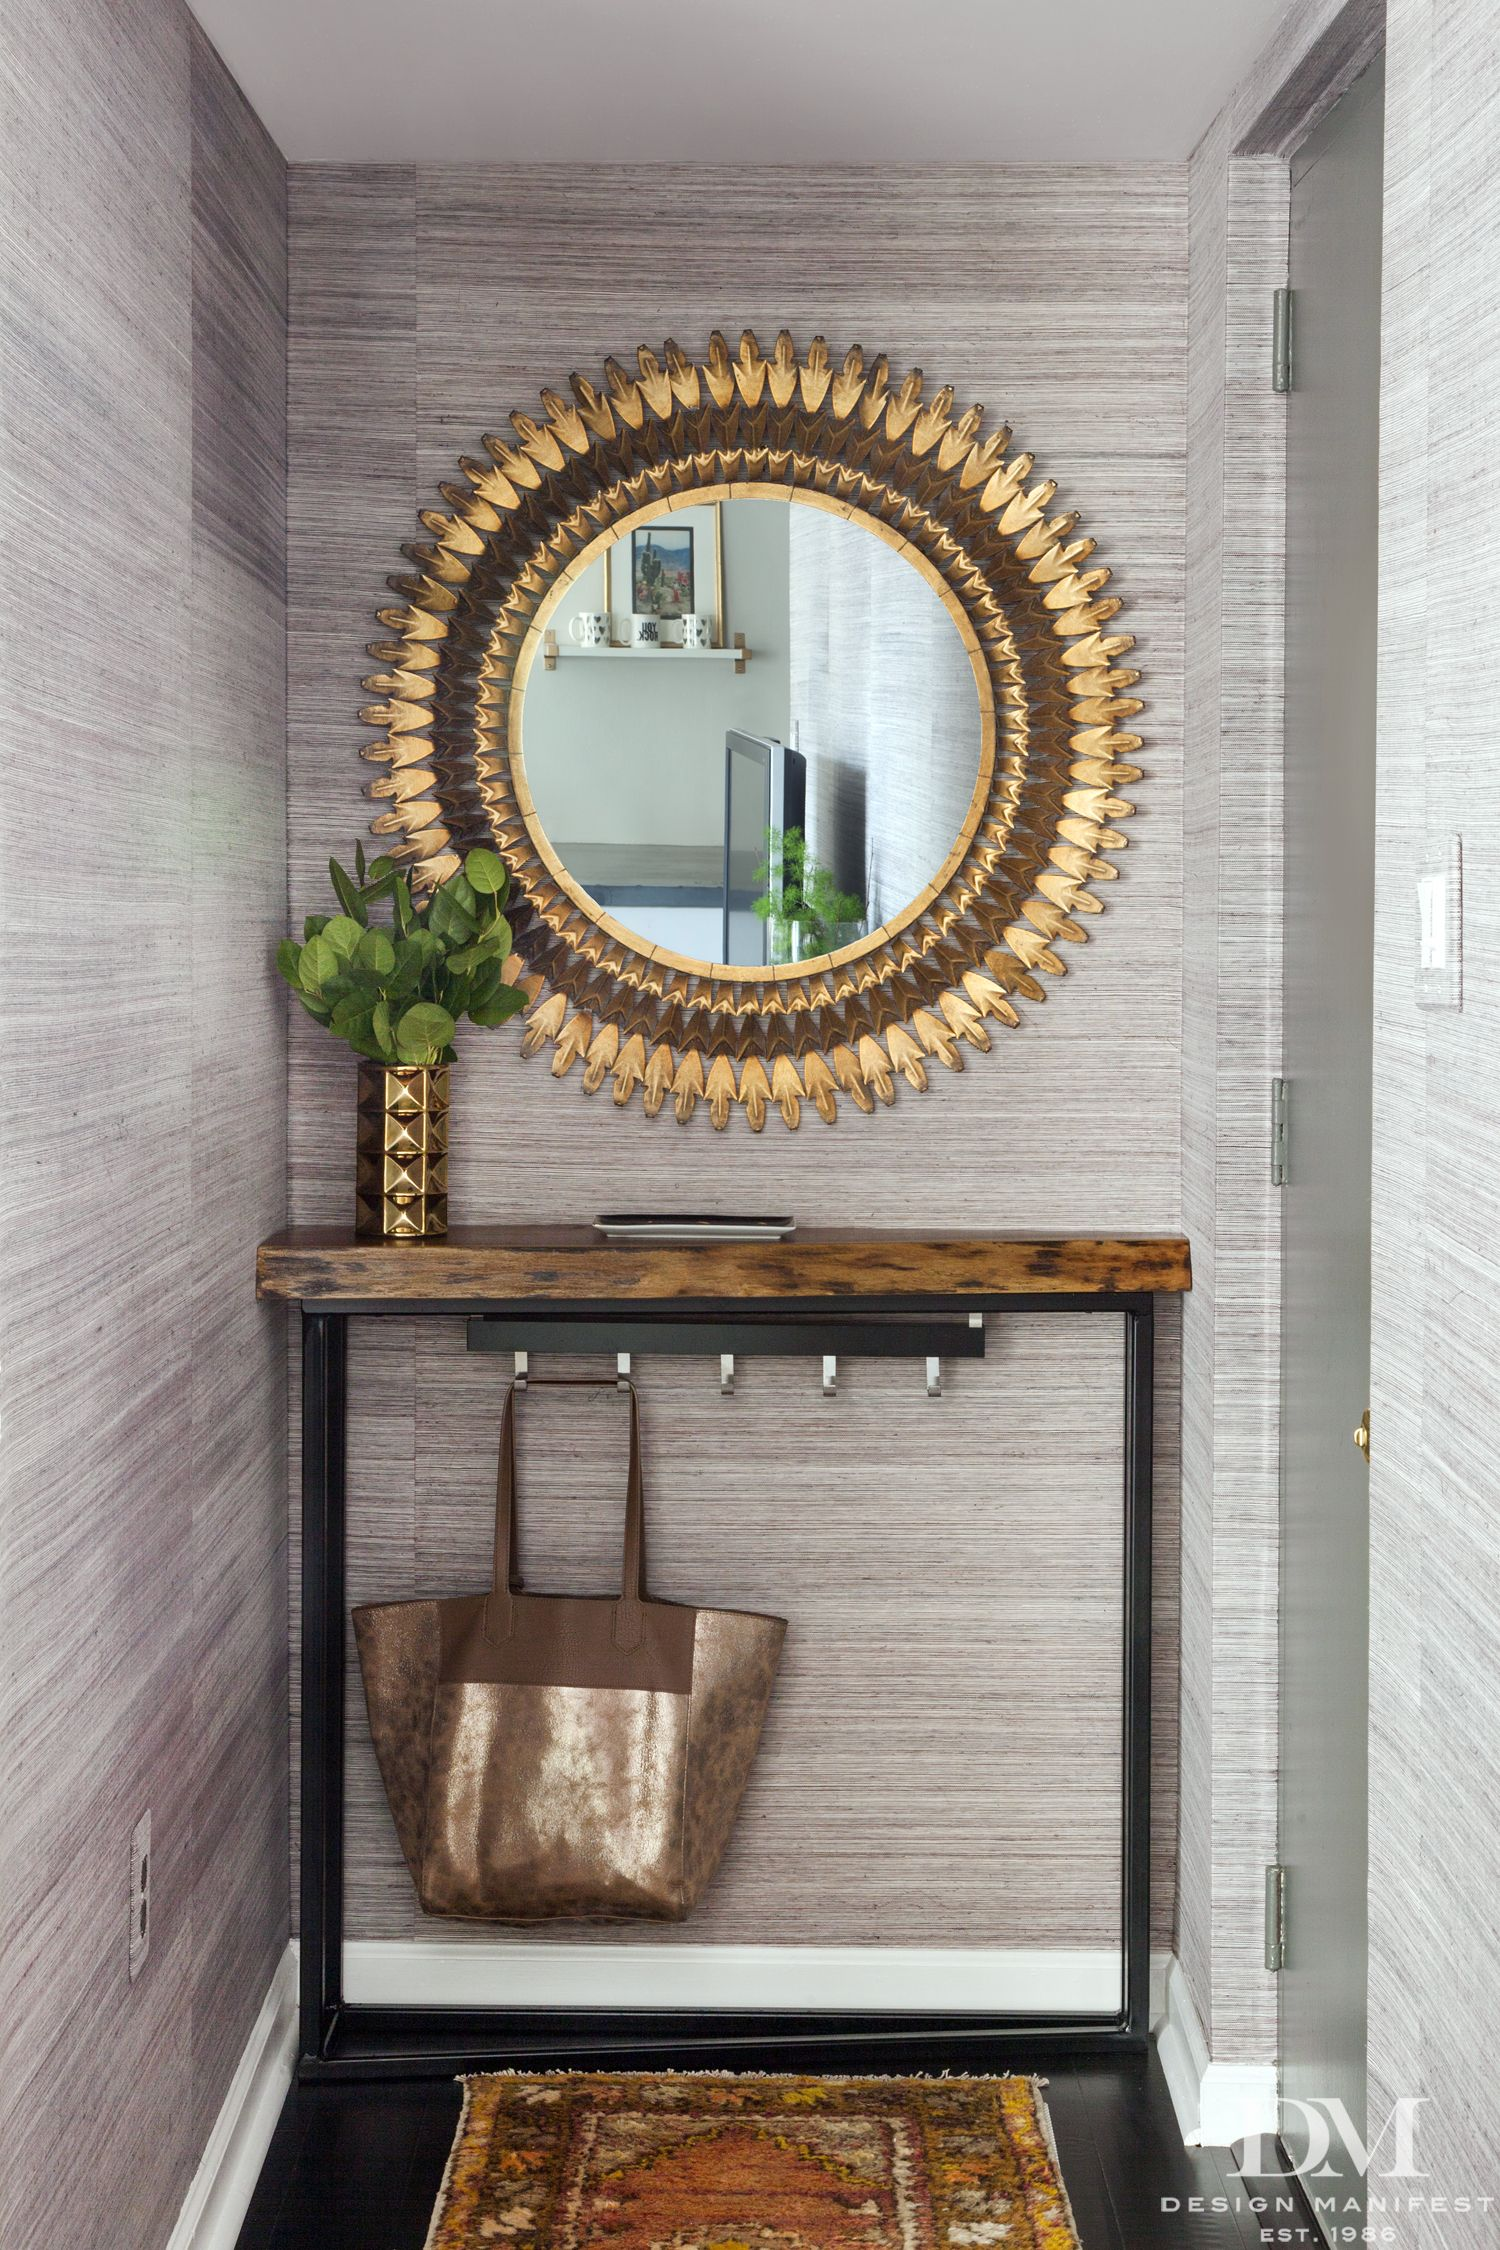 Smart Ways To Add A Functional Foyer When You Can Barely Spare The